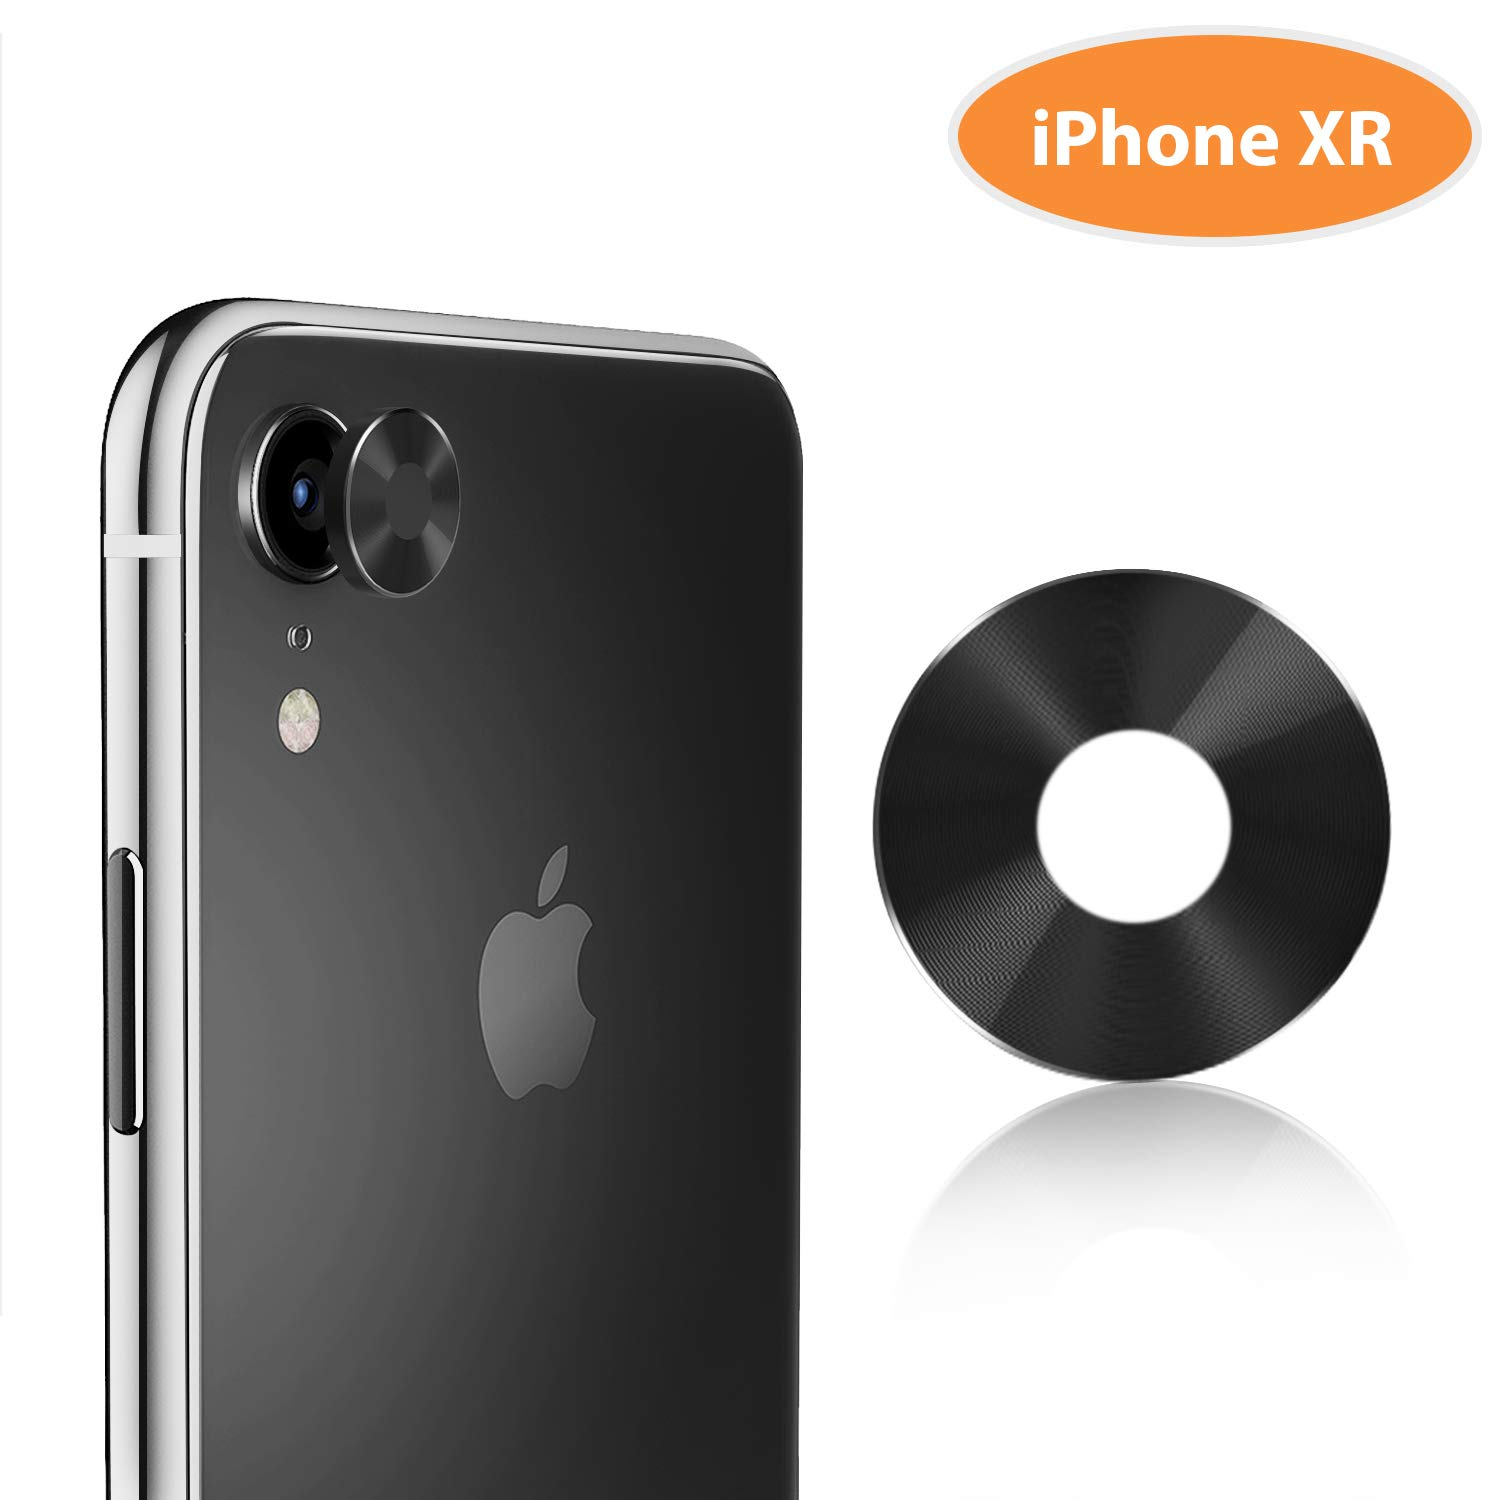 "cheaper a471f c1698 TINICR iPhone XR Camera Lens Protector Ultra Thin Metal [Not Glass] Back  Rear Camera Lens Screen Cover Case Shield Compatible for iPhone XR 6.1"" ..."